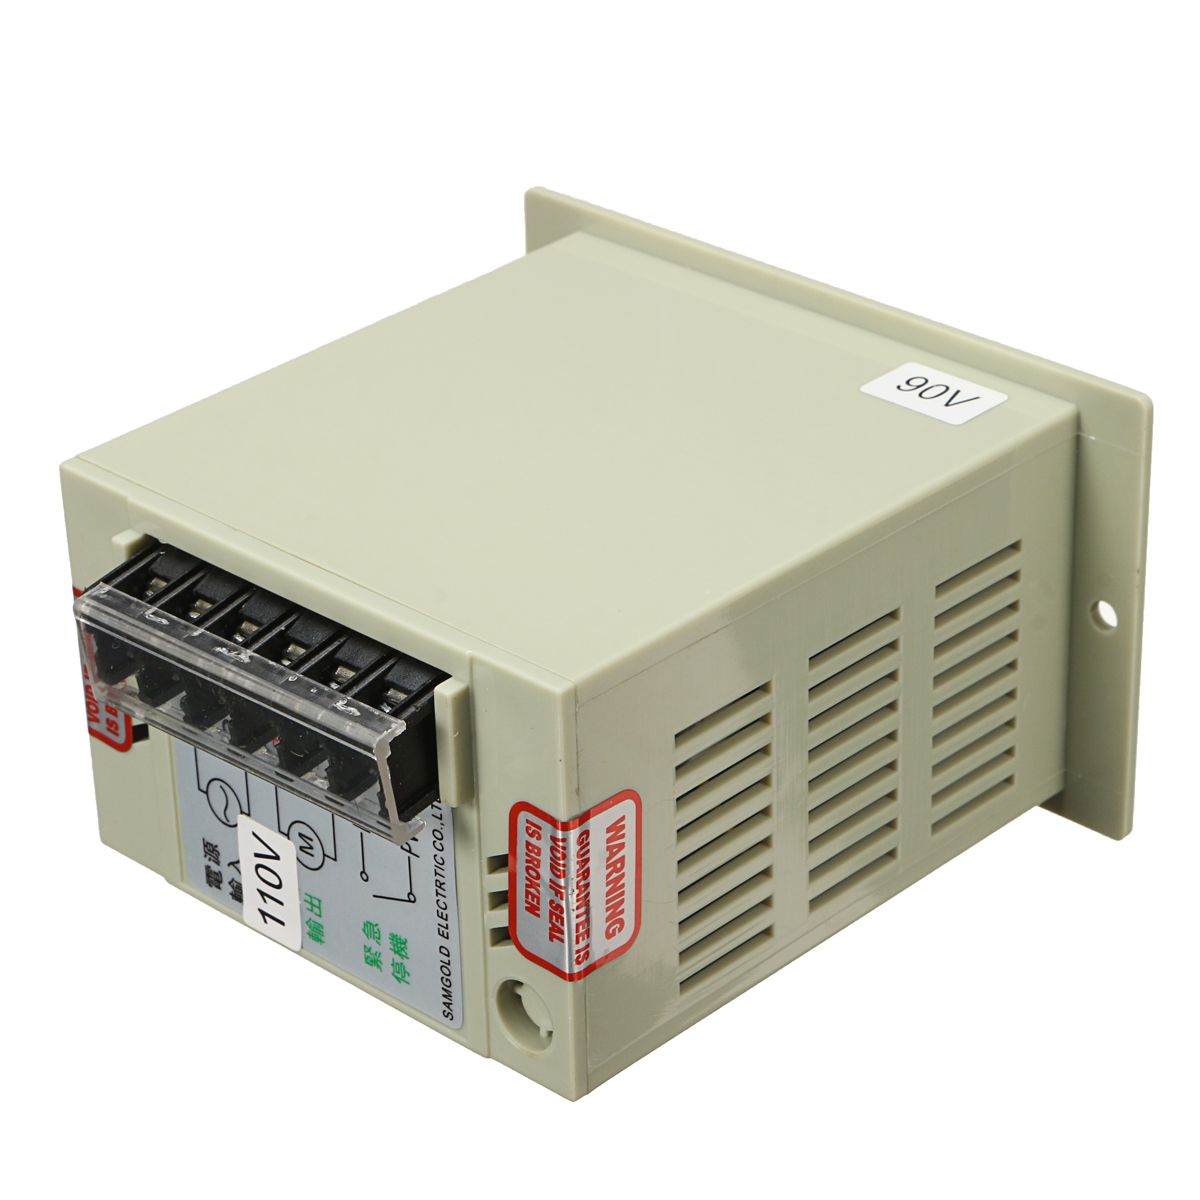 Dc 51 1 3 phase ac 110v motor speed controller variable for How to convert a dc motor to ac